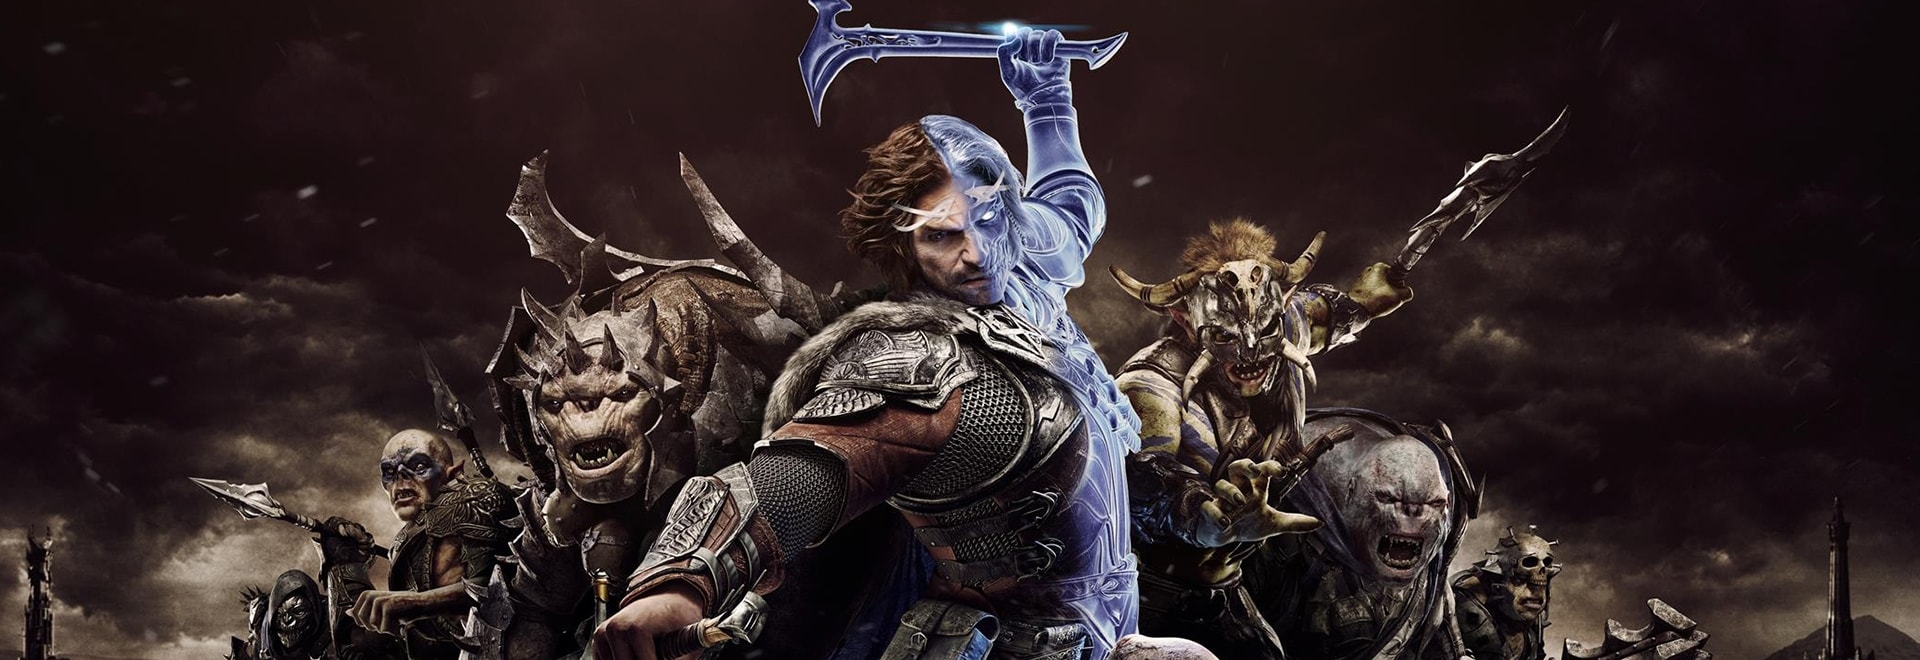 Middle-earth: Shadow of War Feature Image